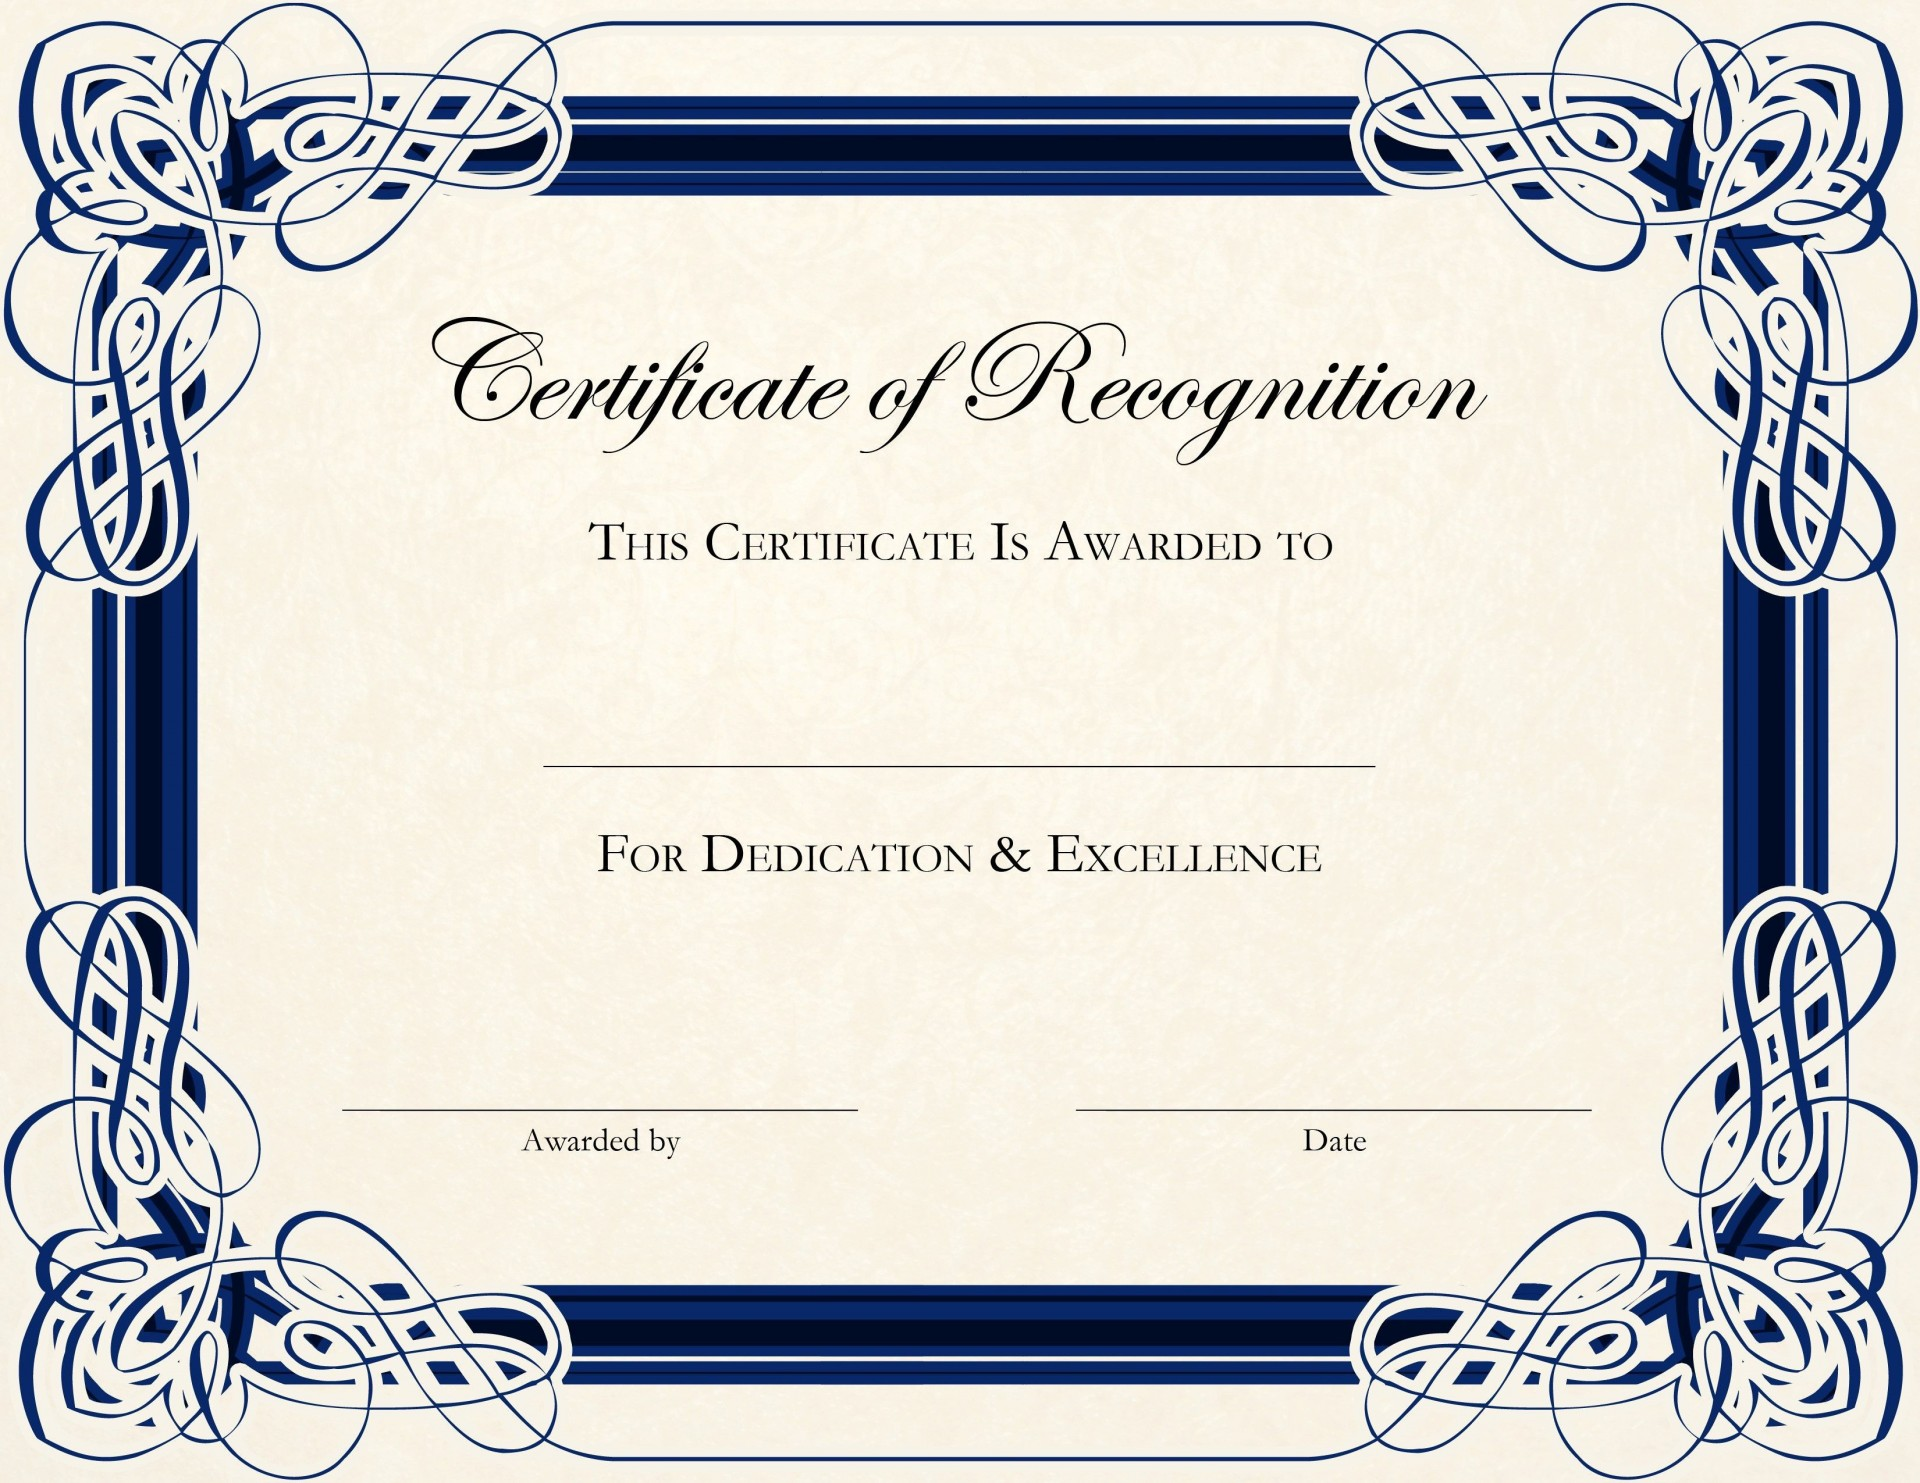 003 Unusual Free Printable Blank Certificate Template Inspiration  Templates Gift Of Achievement1920